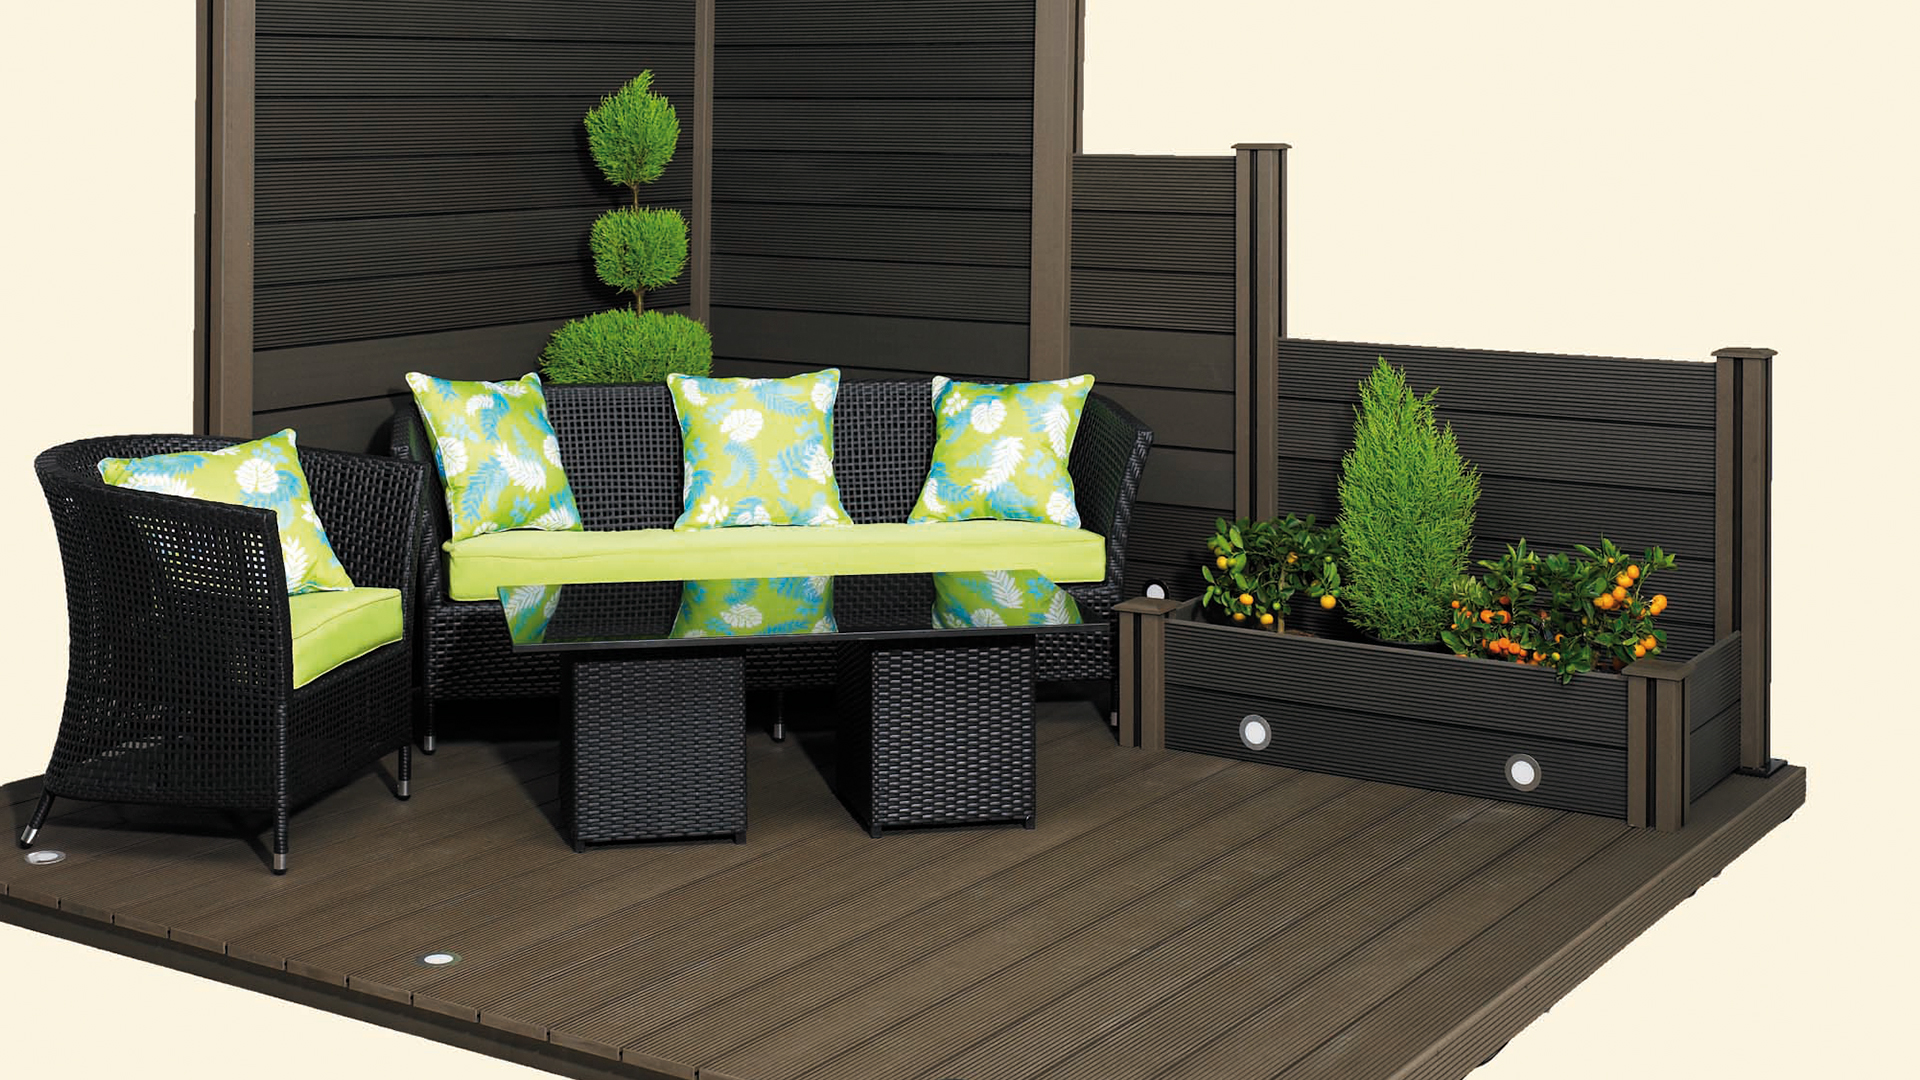 wpc terrassendielen jh parkett. Black Bedroom Furniture Sets. Home Design Ideas